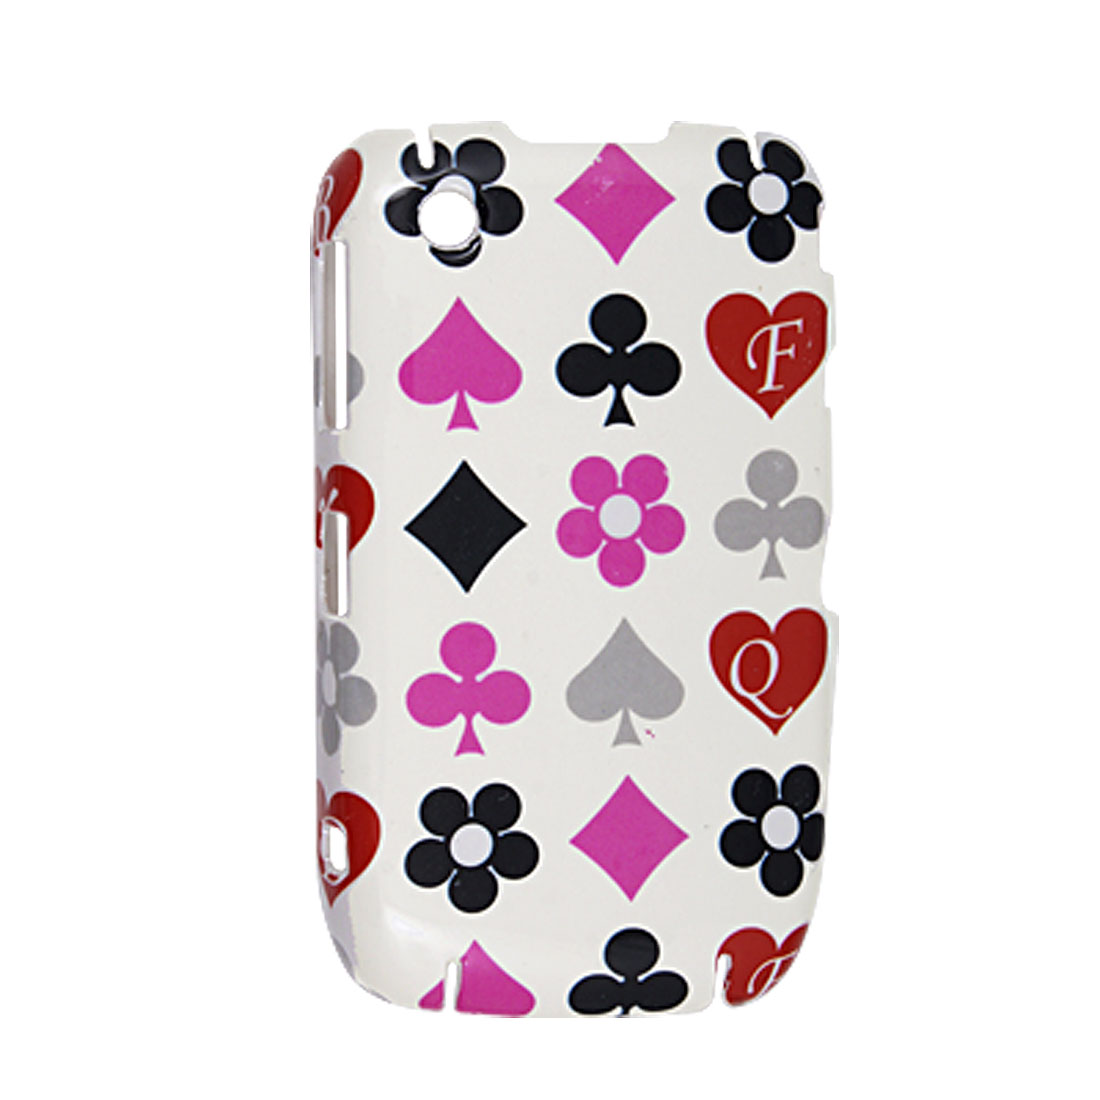 Playing Card Symbols White Background Hard Plastic Cover for BlackBerry 8520